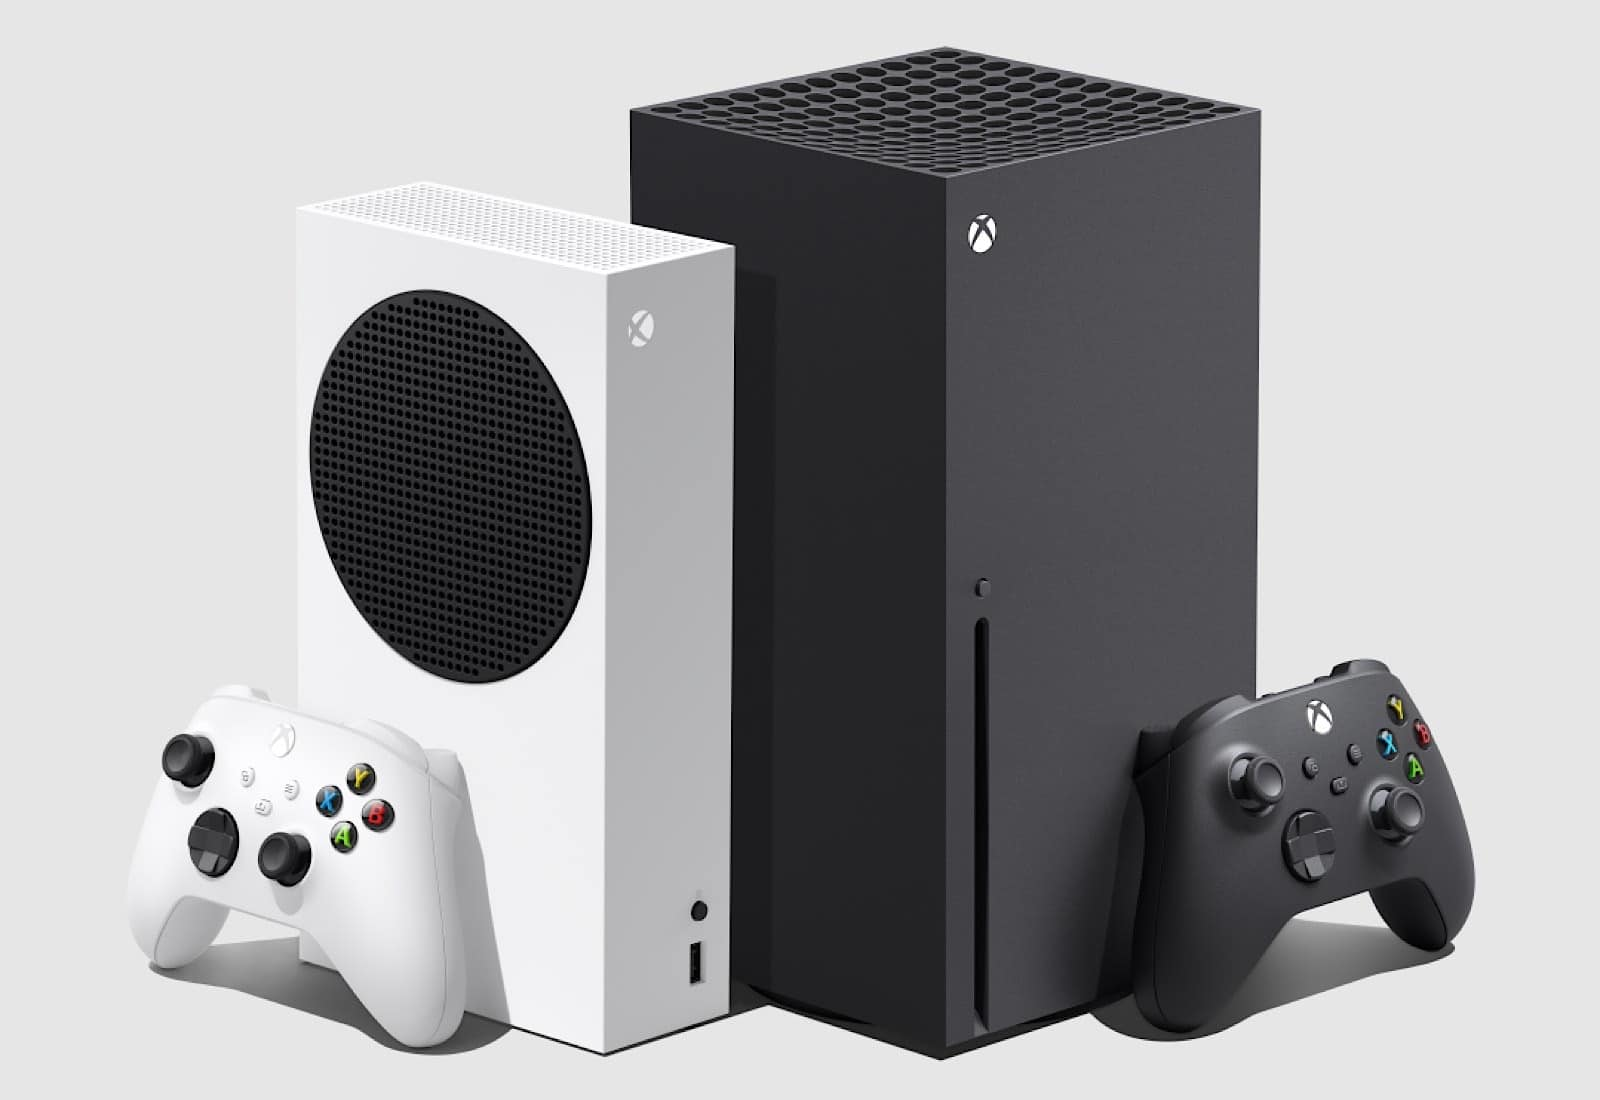 The Xbox Series X (left) next to the Xbox Series S (right)